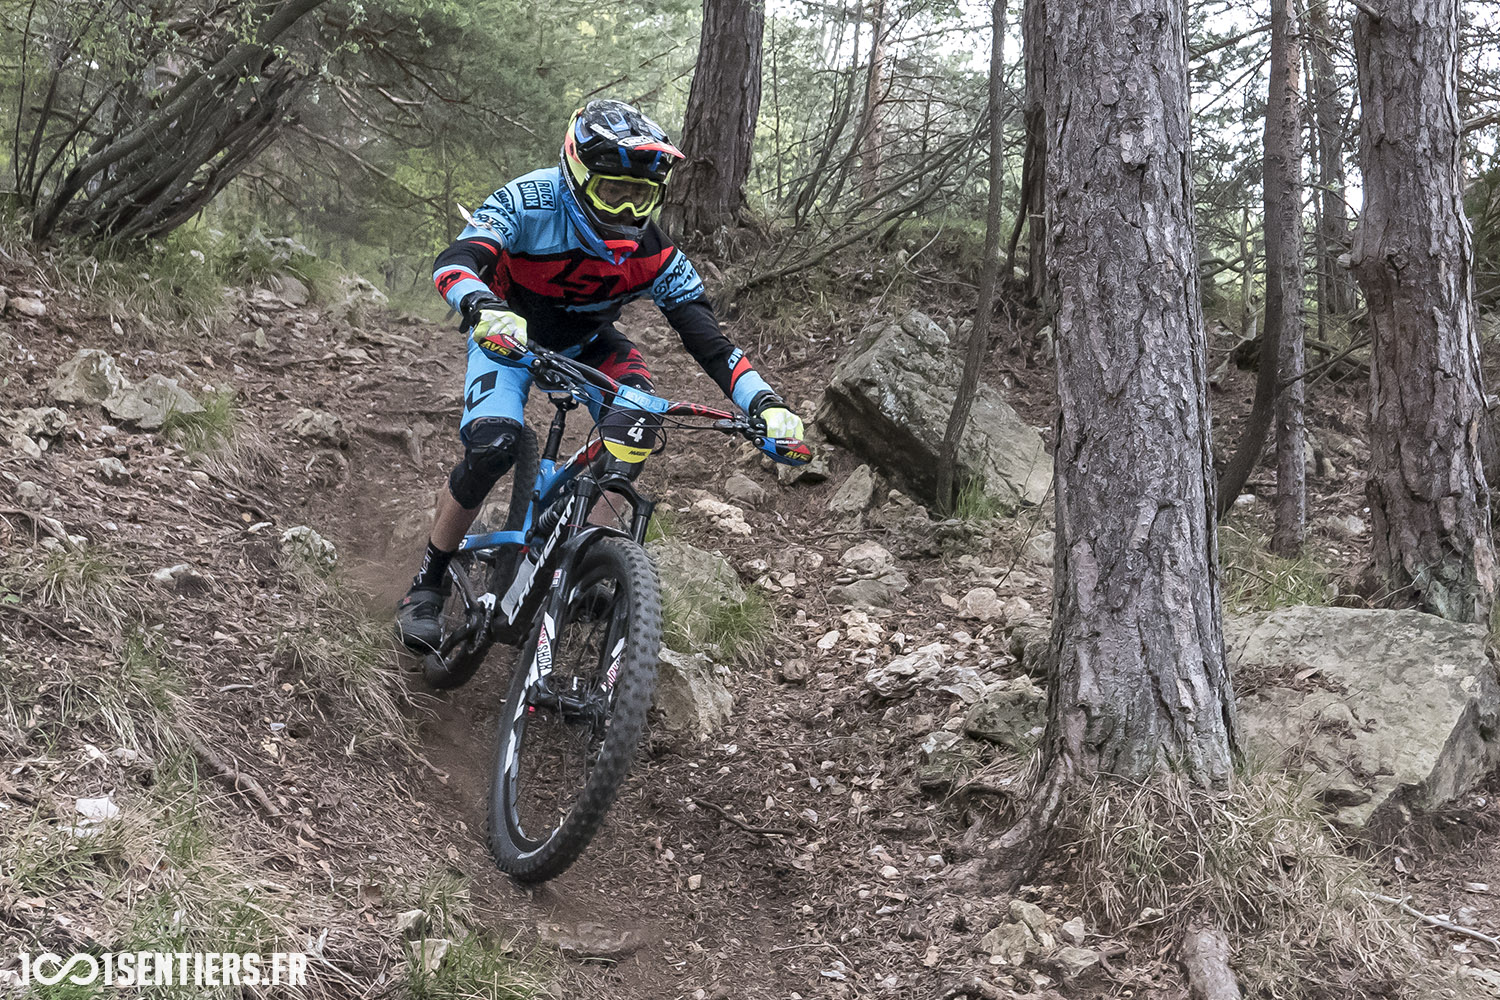 beverally 2016 1001sentiers 1001 enduro tour 26